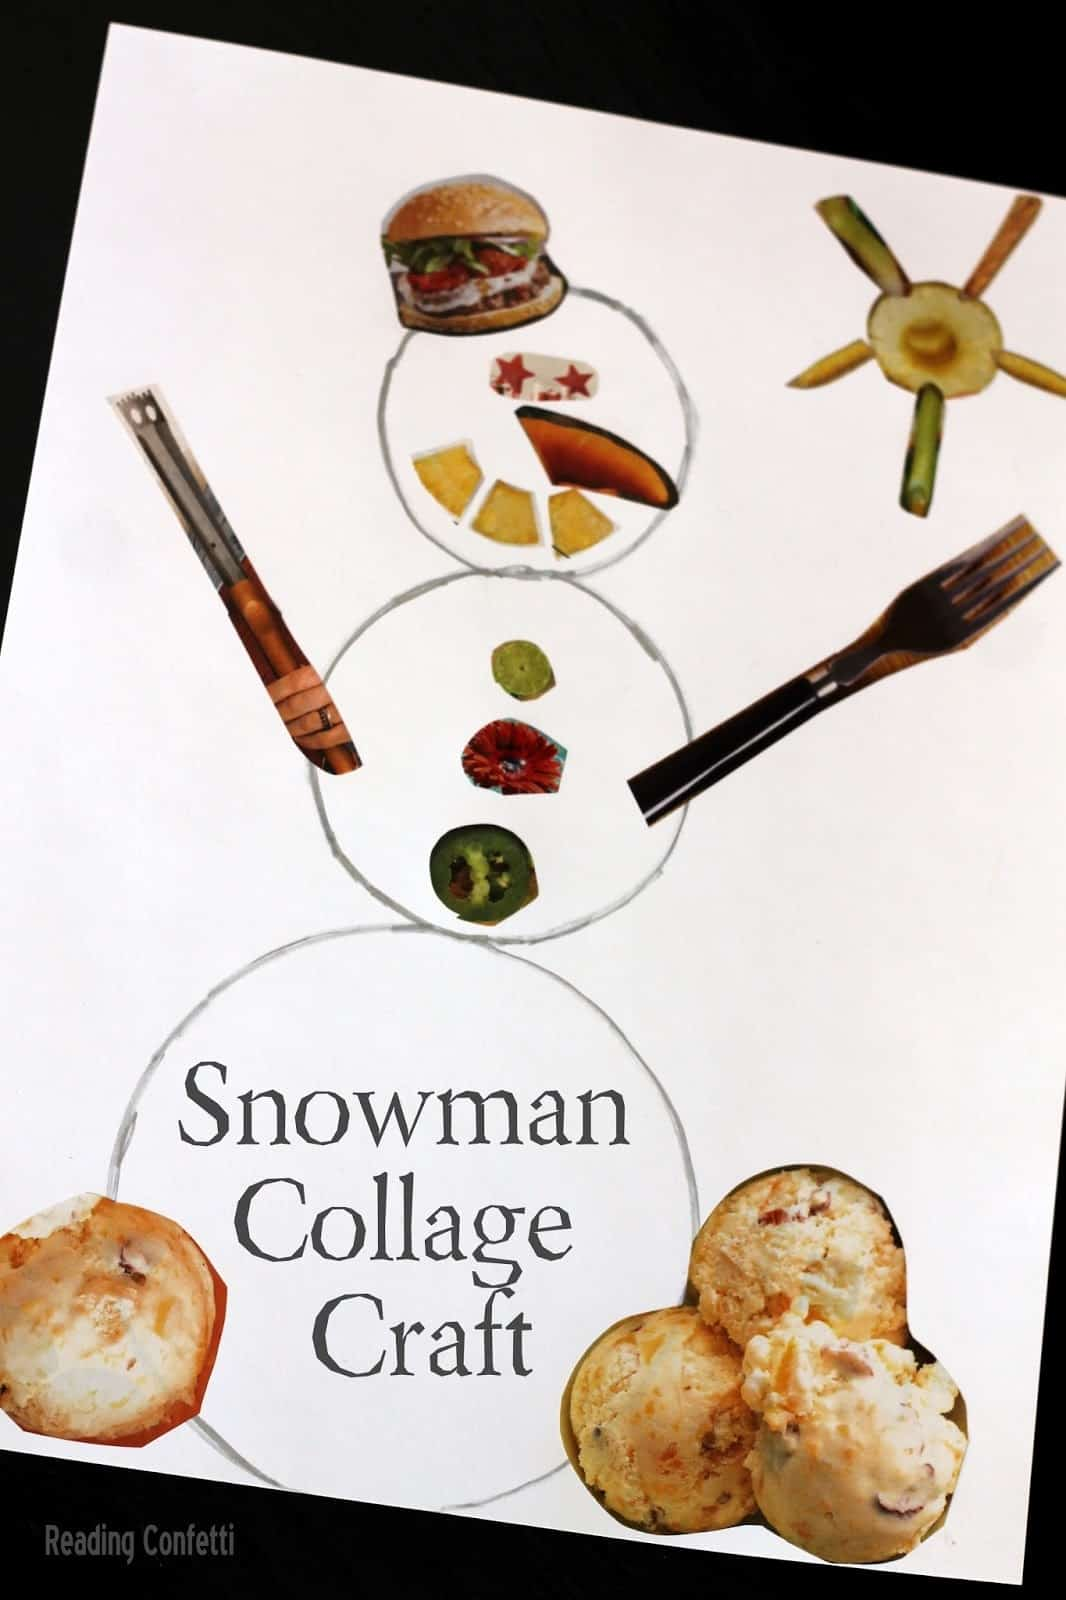 Snowman collage craft